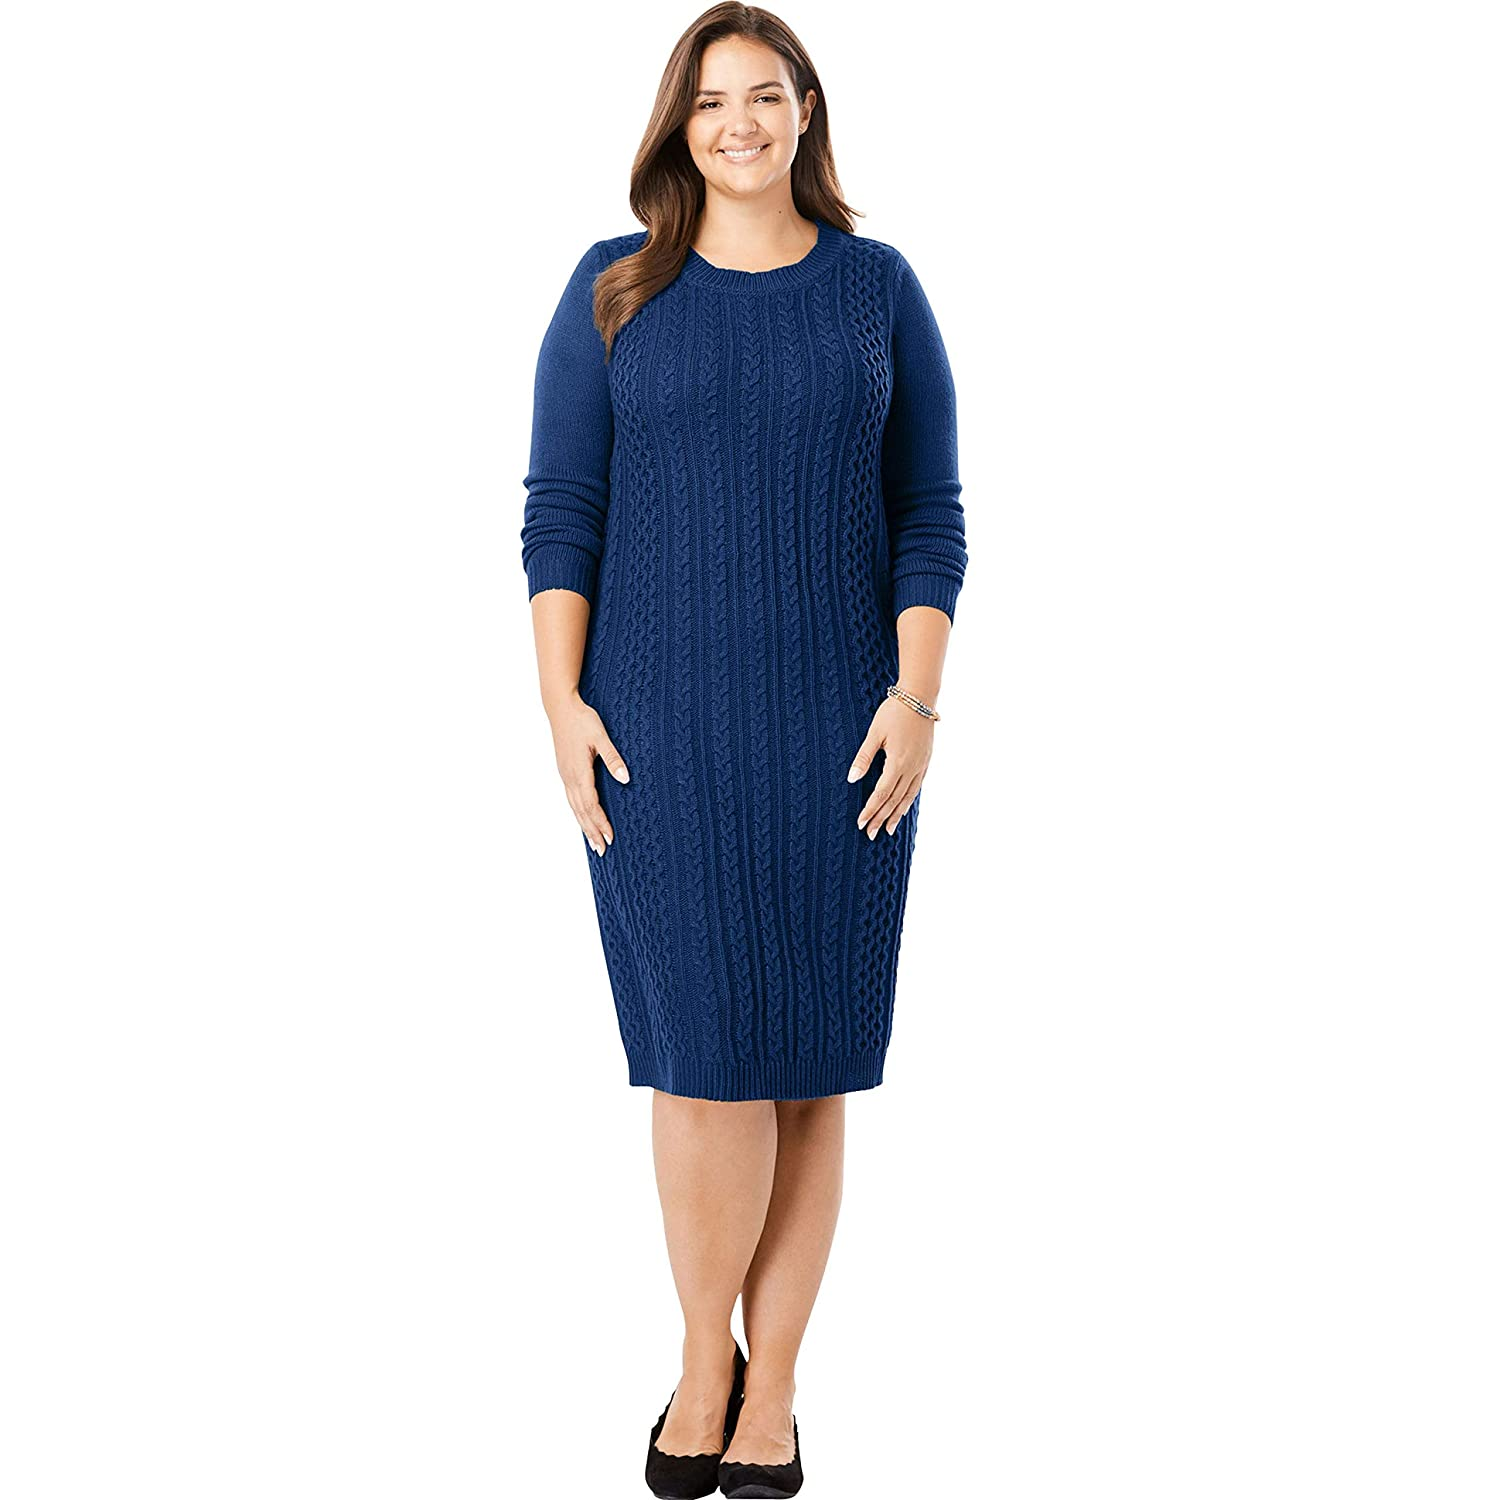 572c2d6993c Woman Within Plus Size Cableknit Sweater Dress at Amazon Women s Clothing  store